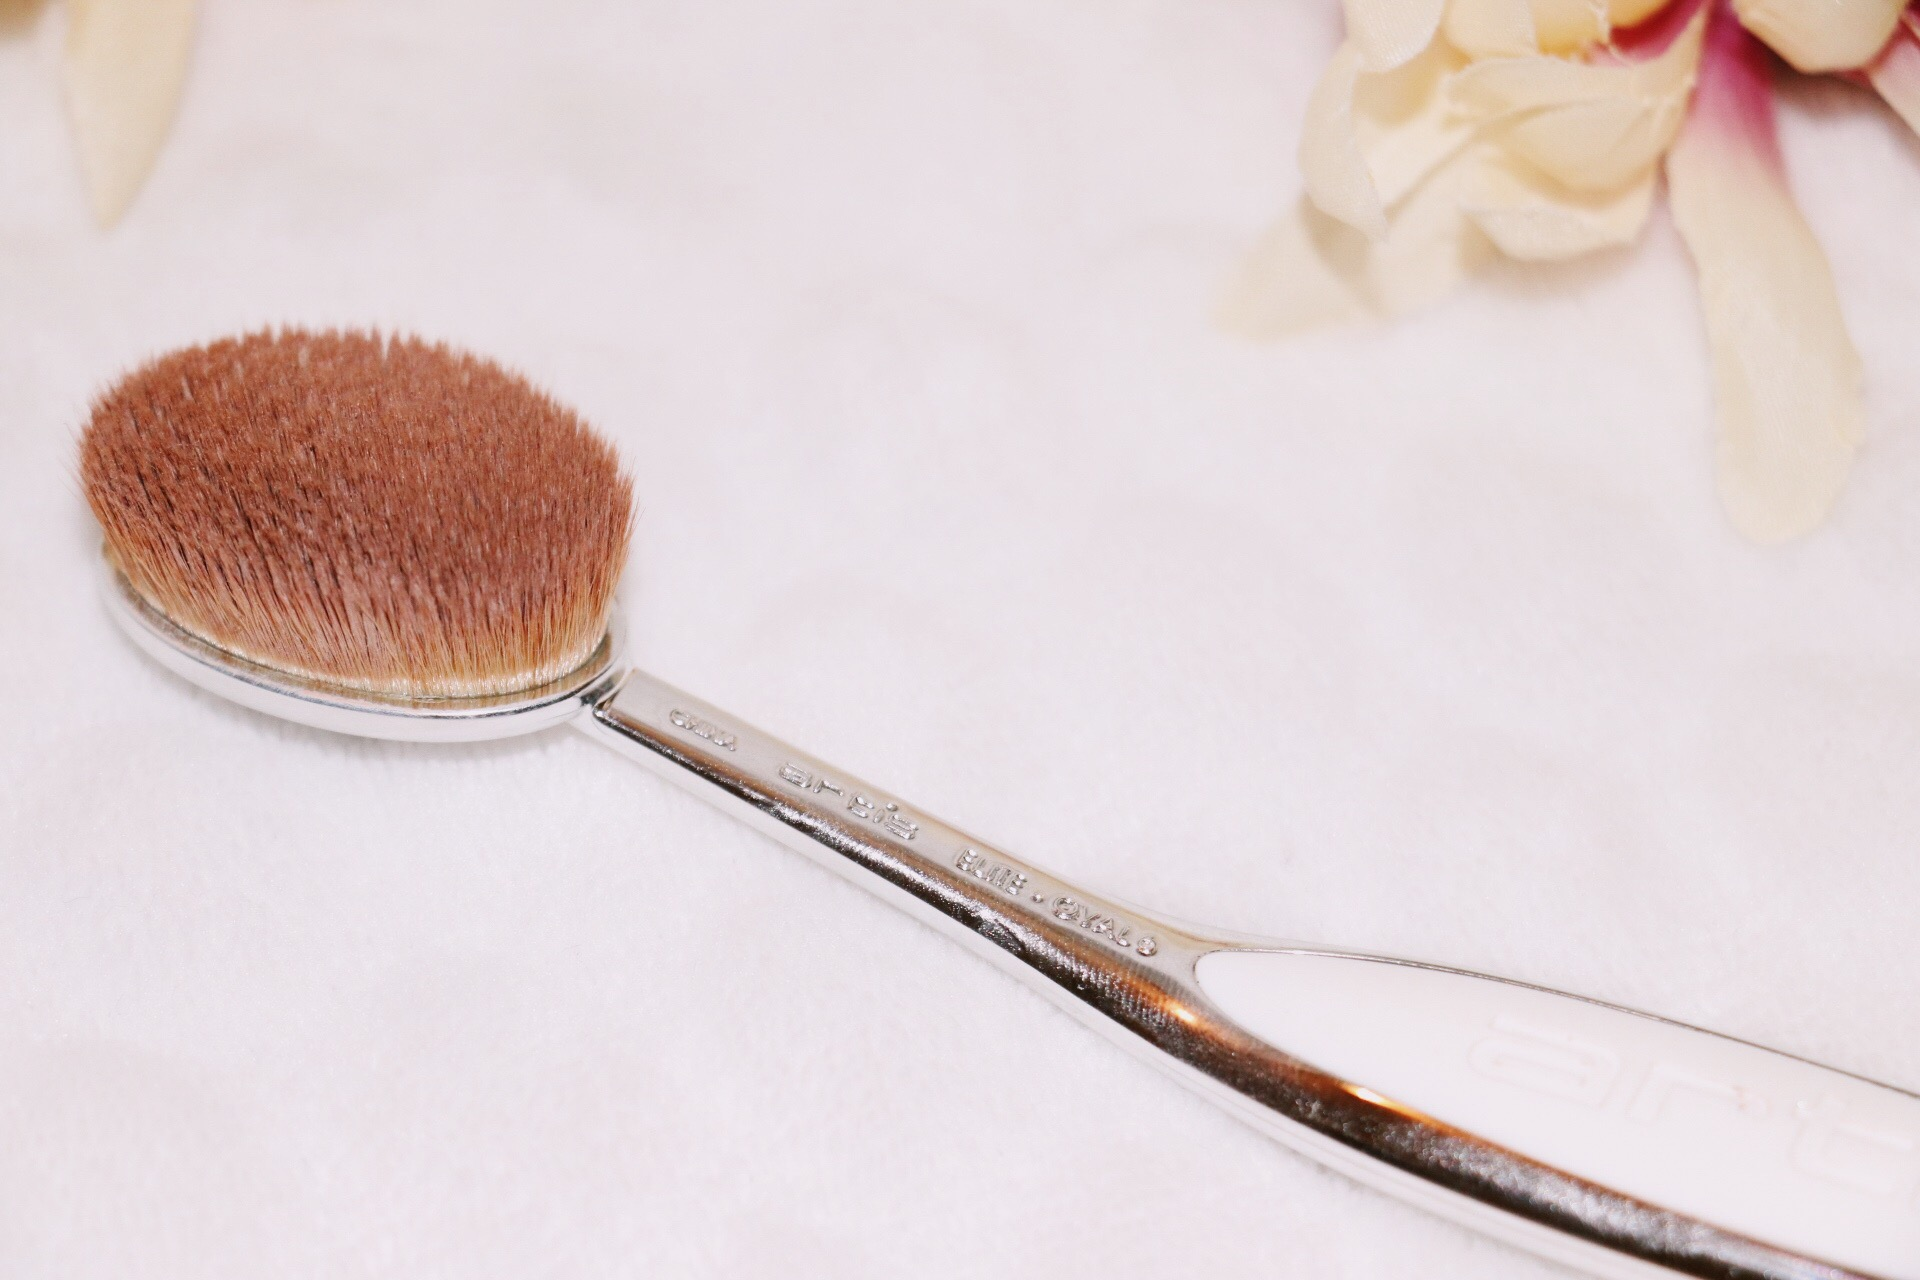 3) Artis Elite Mirror Oval 6 Brush  2 words: Worth it! (Another reason why my foundation goes on so smoothly, along with the E.L.F primer). I was unsure at first because of the price, but I am so glad I got it. On my old blog, I mentioned my beauty blender as one of the things being left behind in 2016 and it sure has! This brush is perfect for applying foundation + concealer. Personally, I think it is definitely worth the splurge. I got mine here.